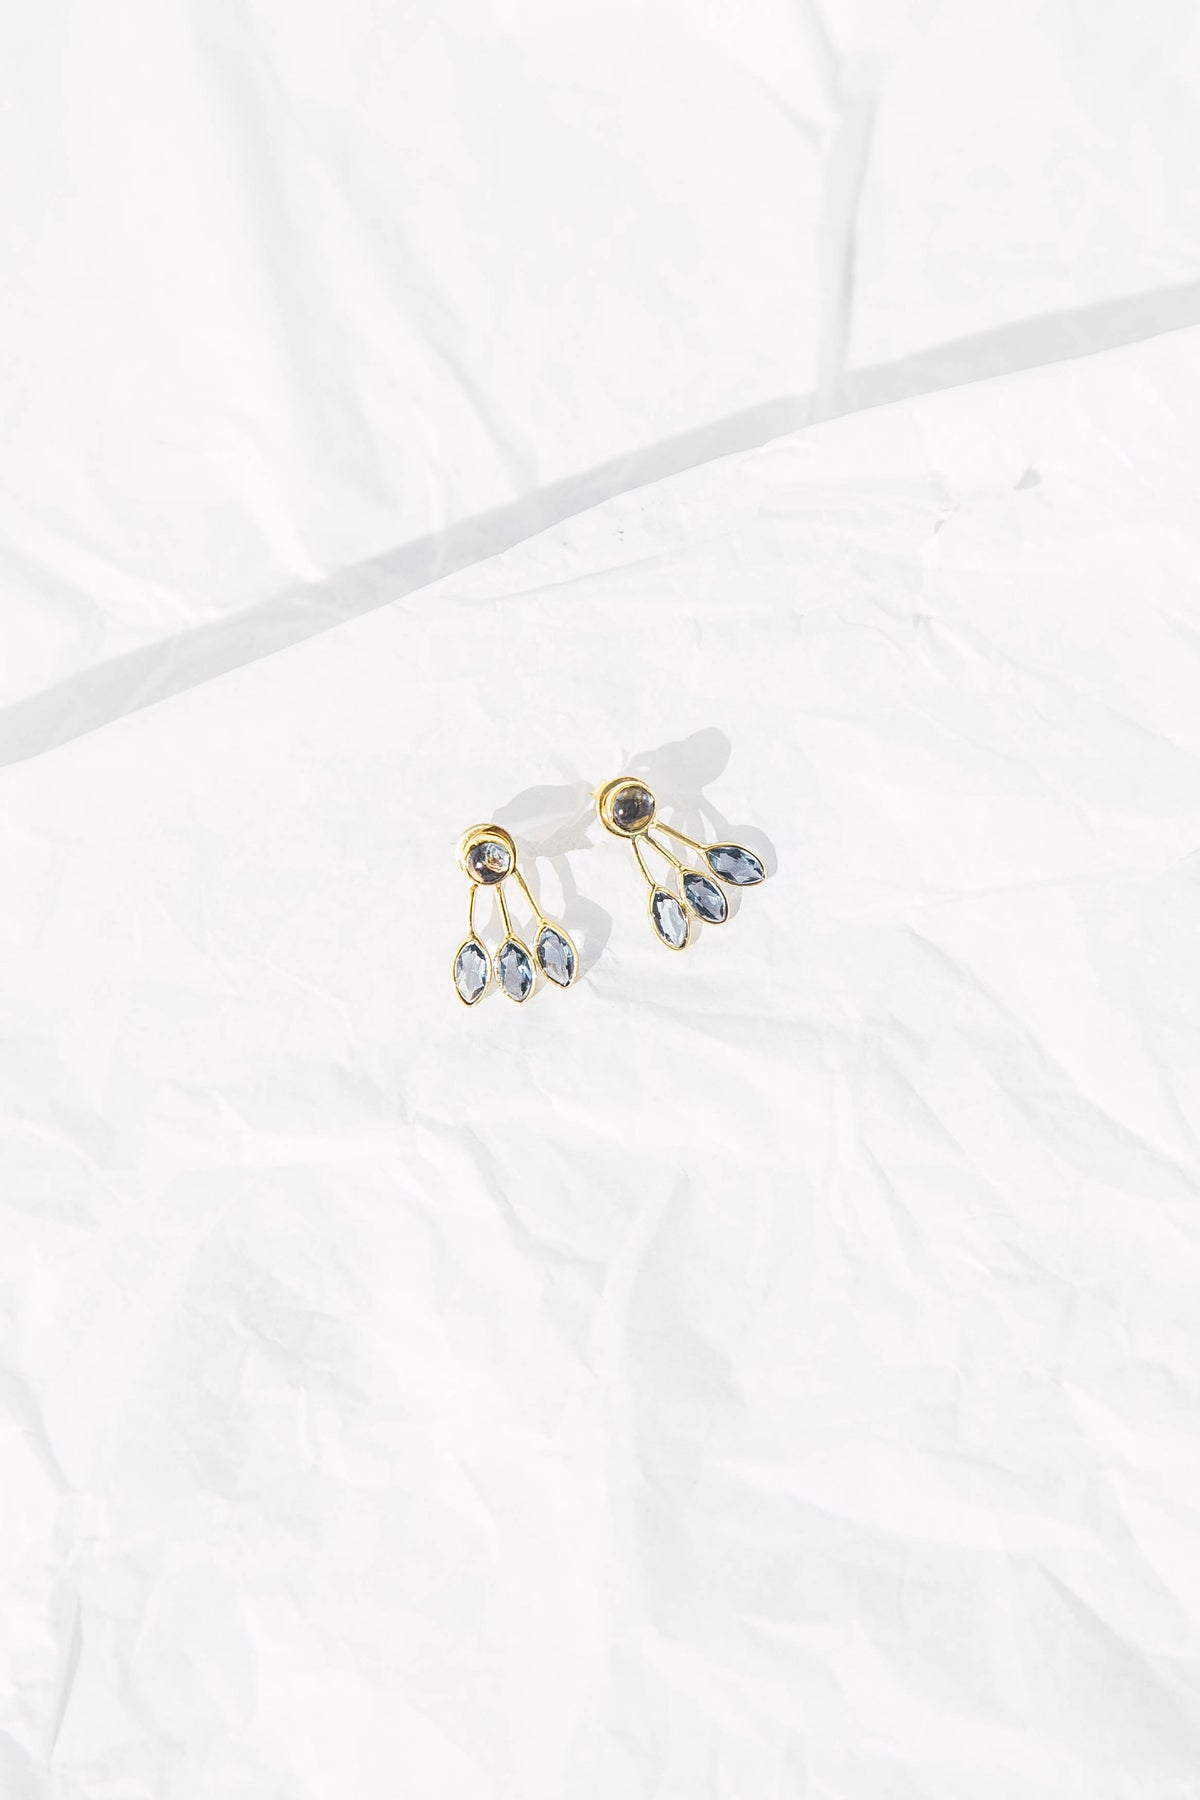 Reese earrings in Blue Crystal